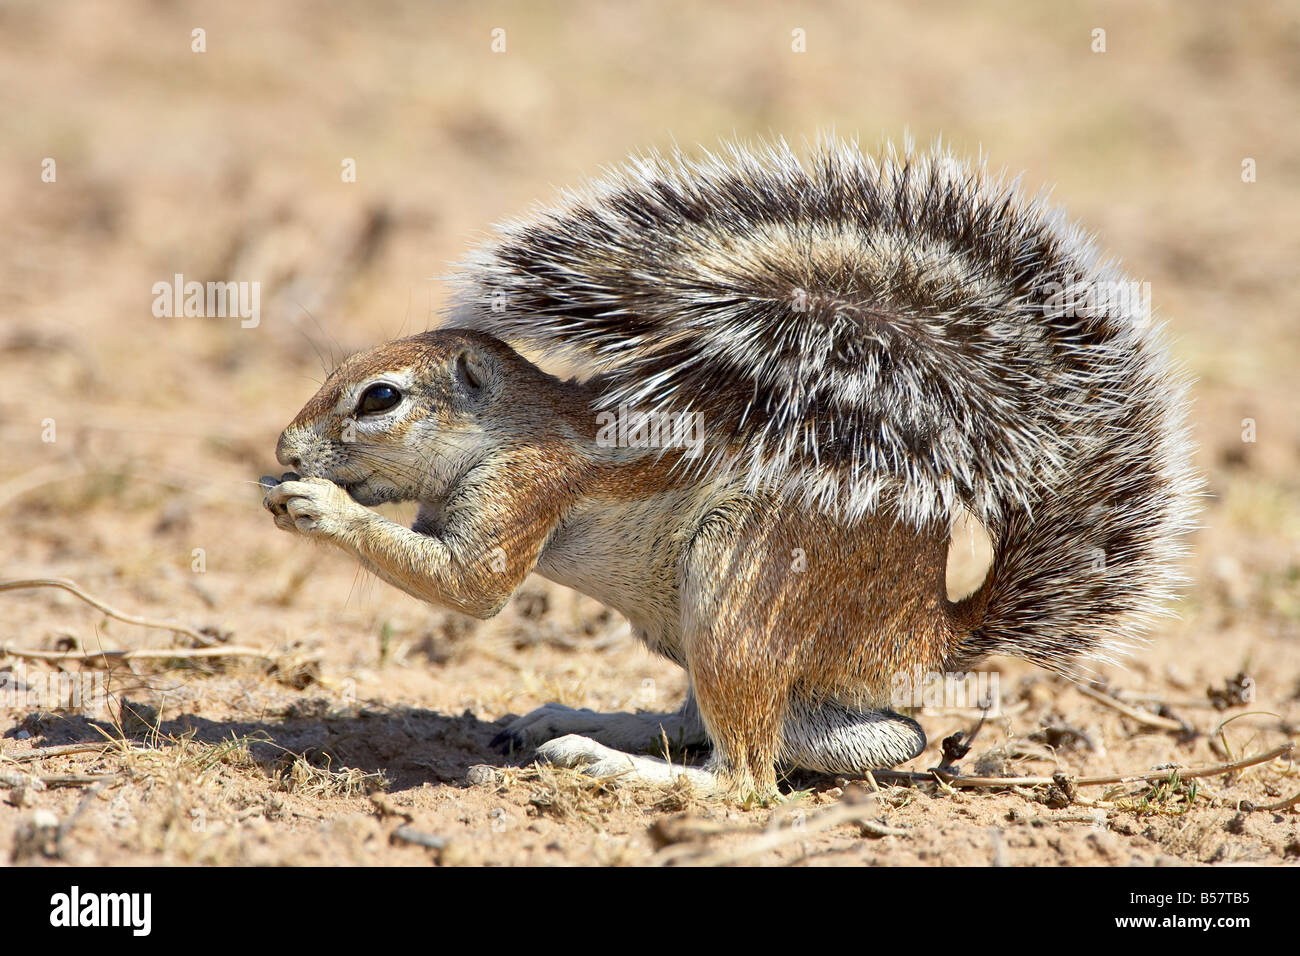 Male Squirrel Stock Photos & Male Squirrel Stock Images - Alamy